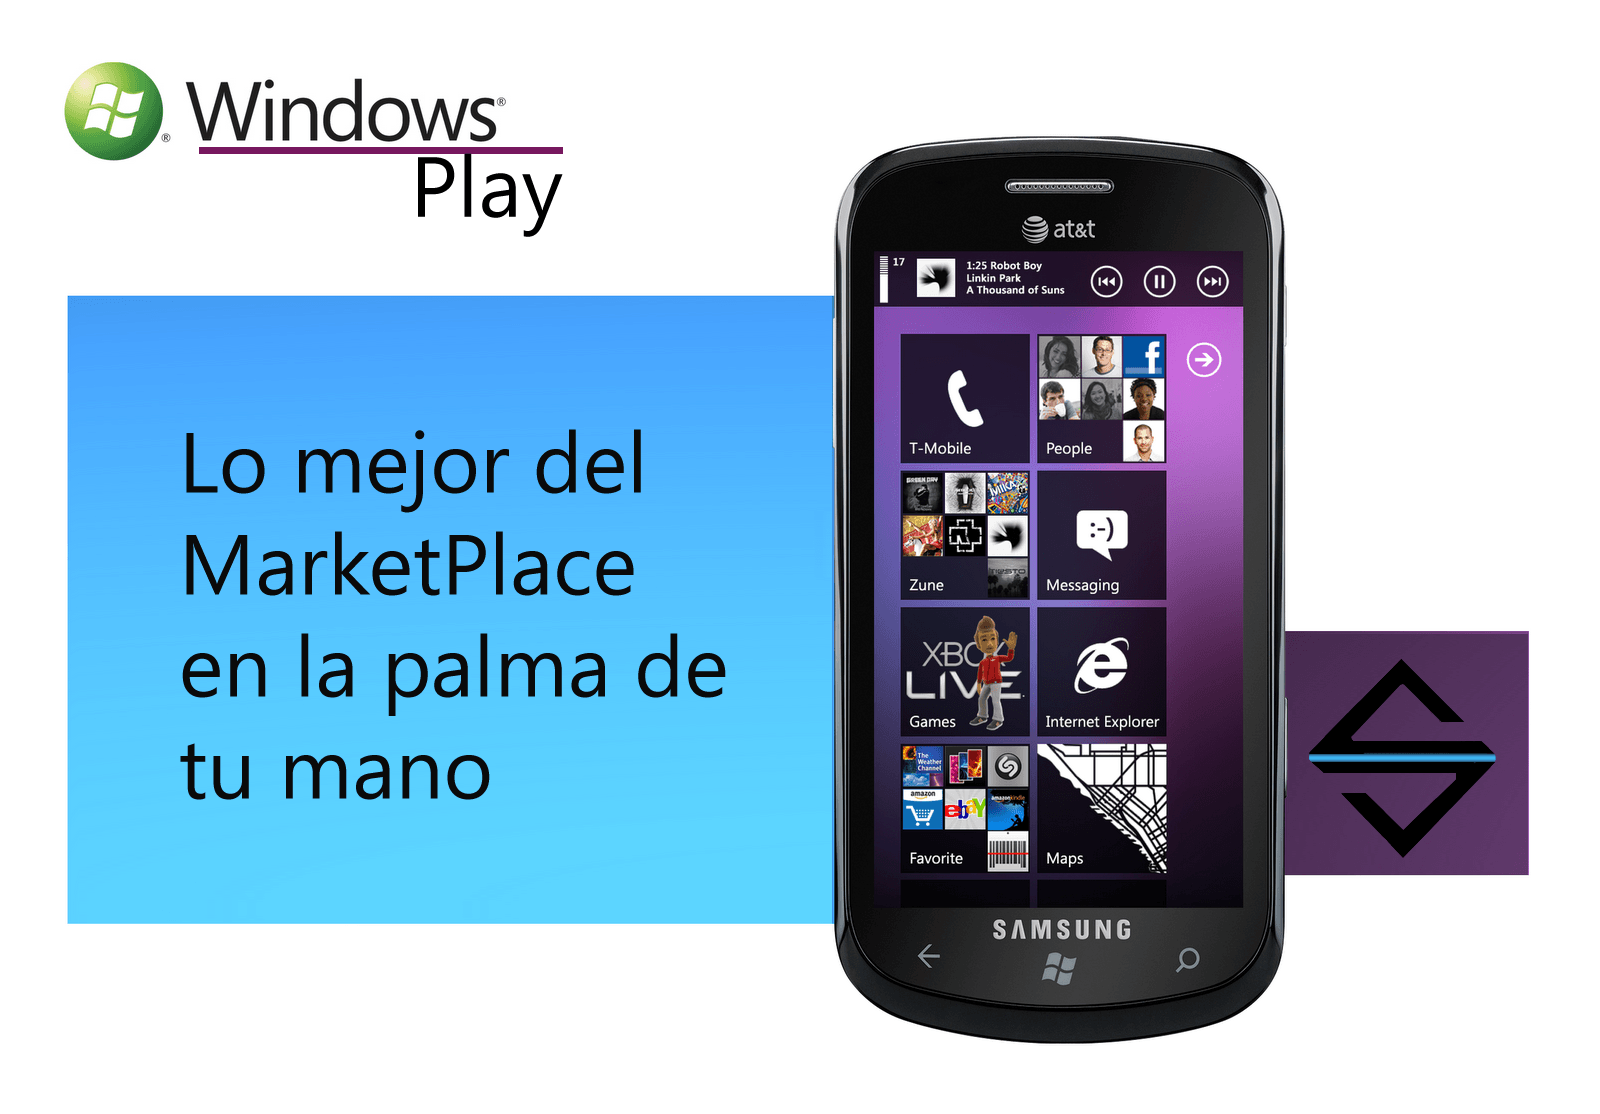 Windows Play